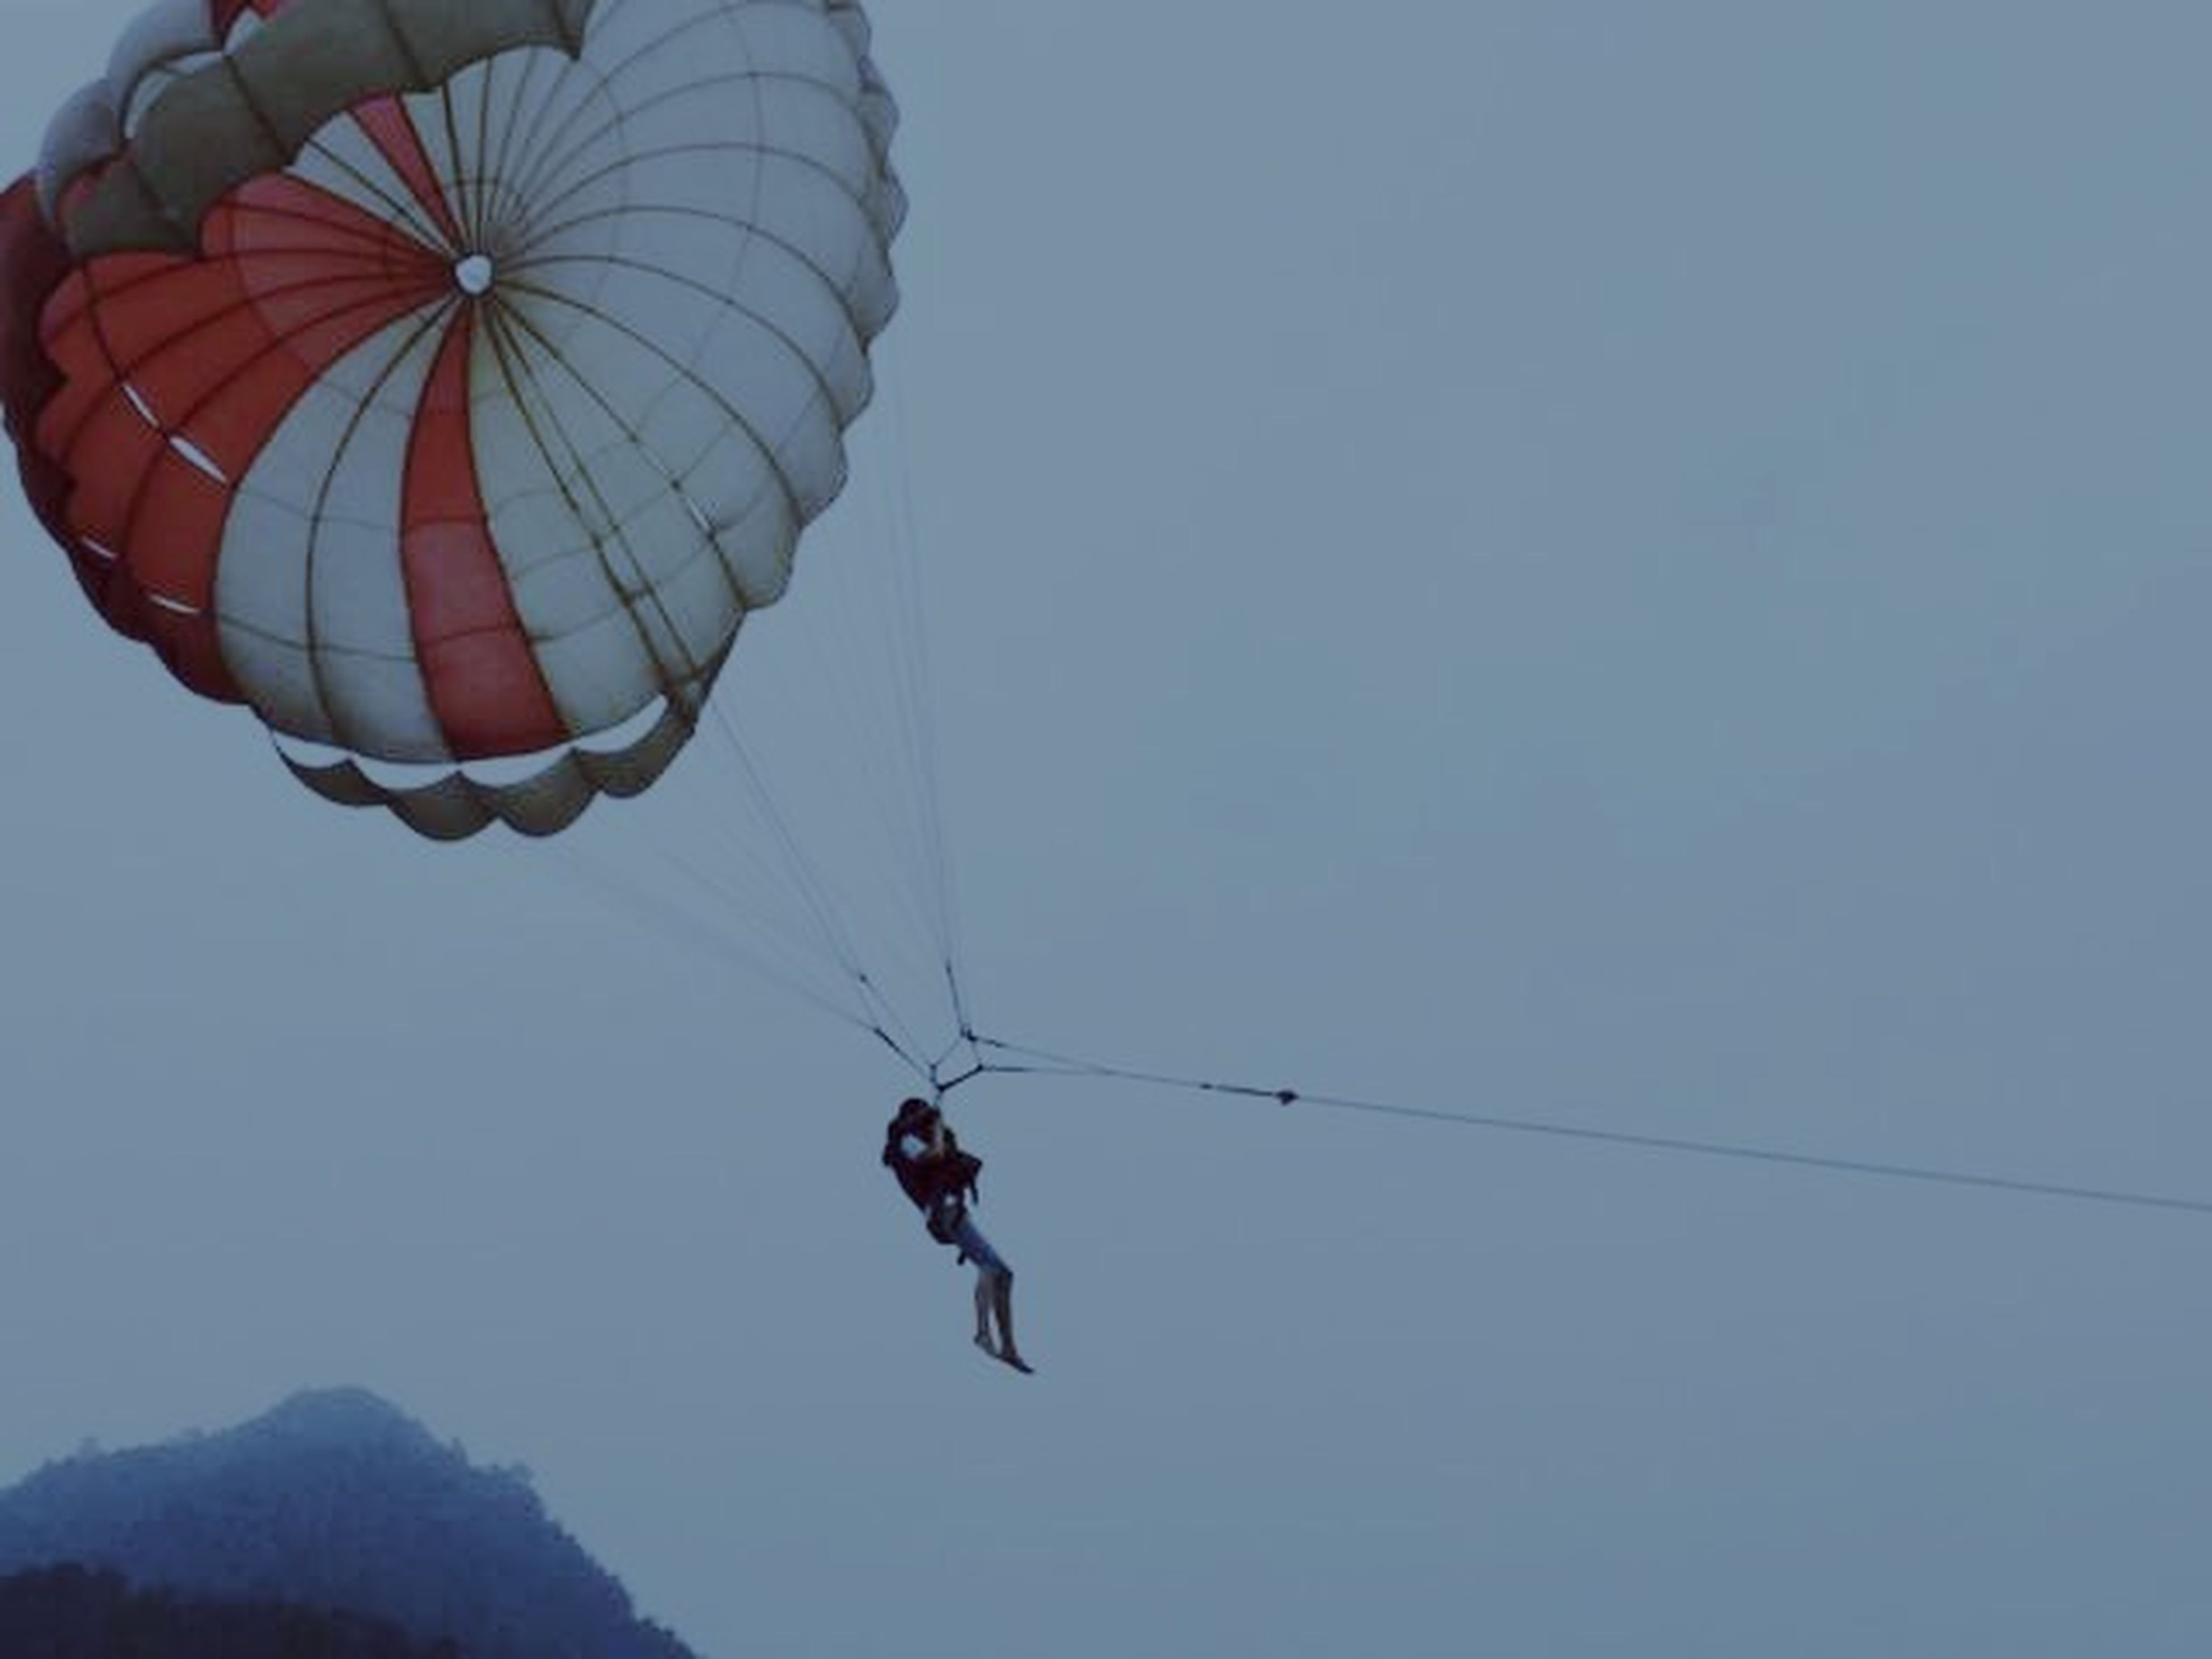 leisure activity, low angle view, mid-air, lifestyles, extreme sports, adventure, parachute, flying, men, clear sky, full length, paragliding, fun, sport, sky, exhilaration, copy space, freedom